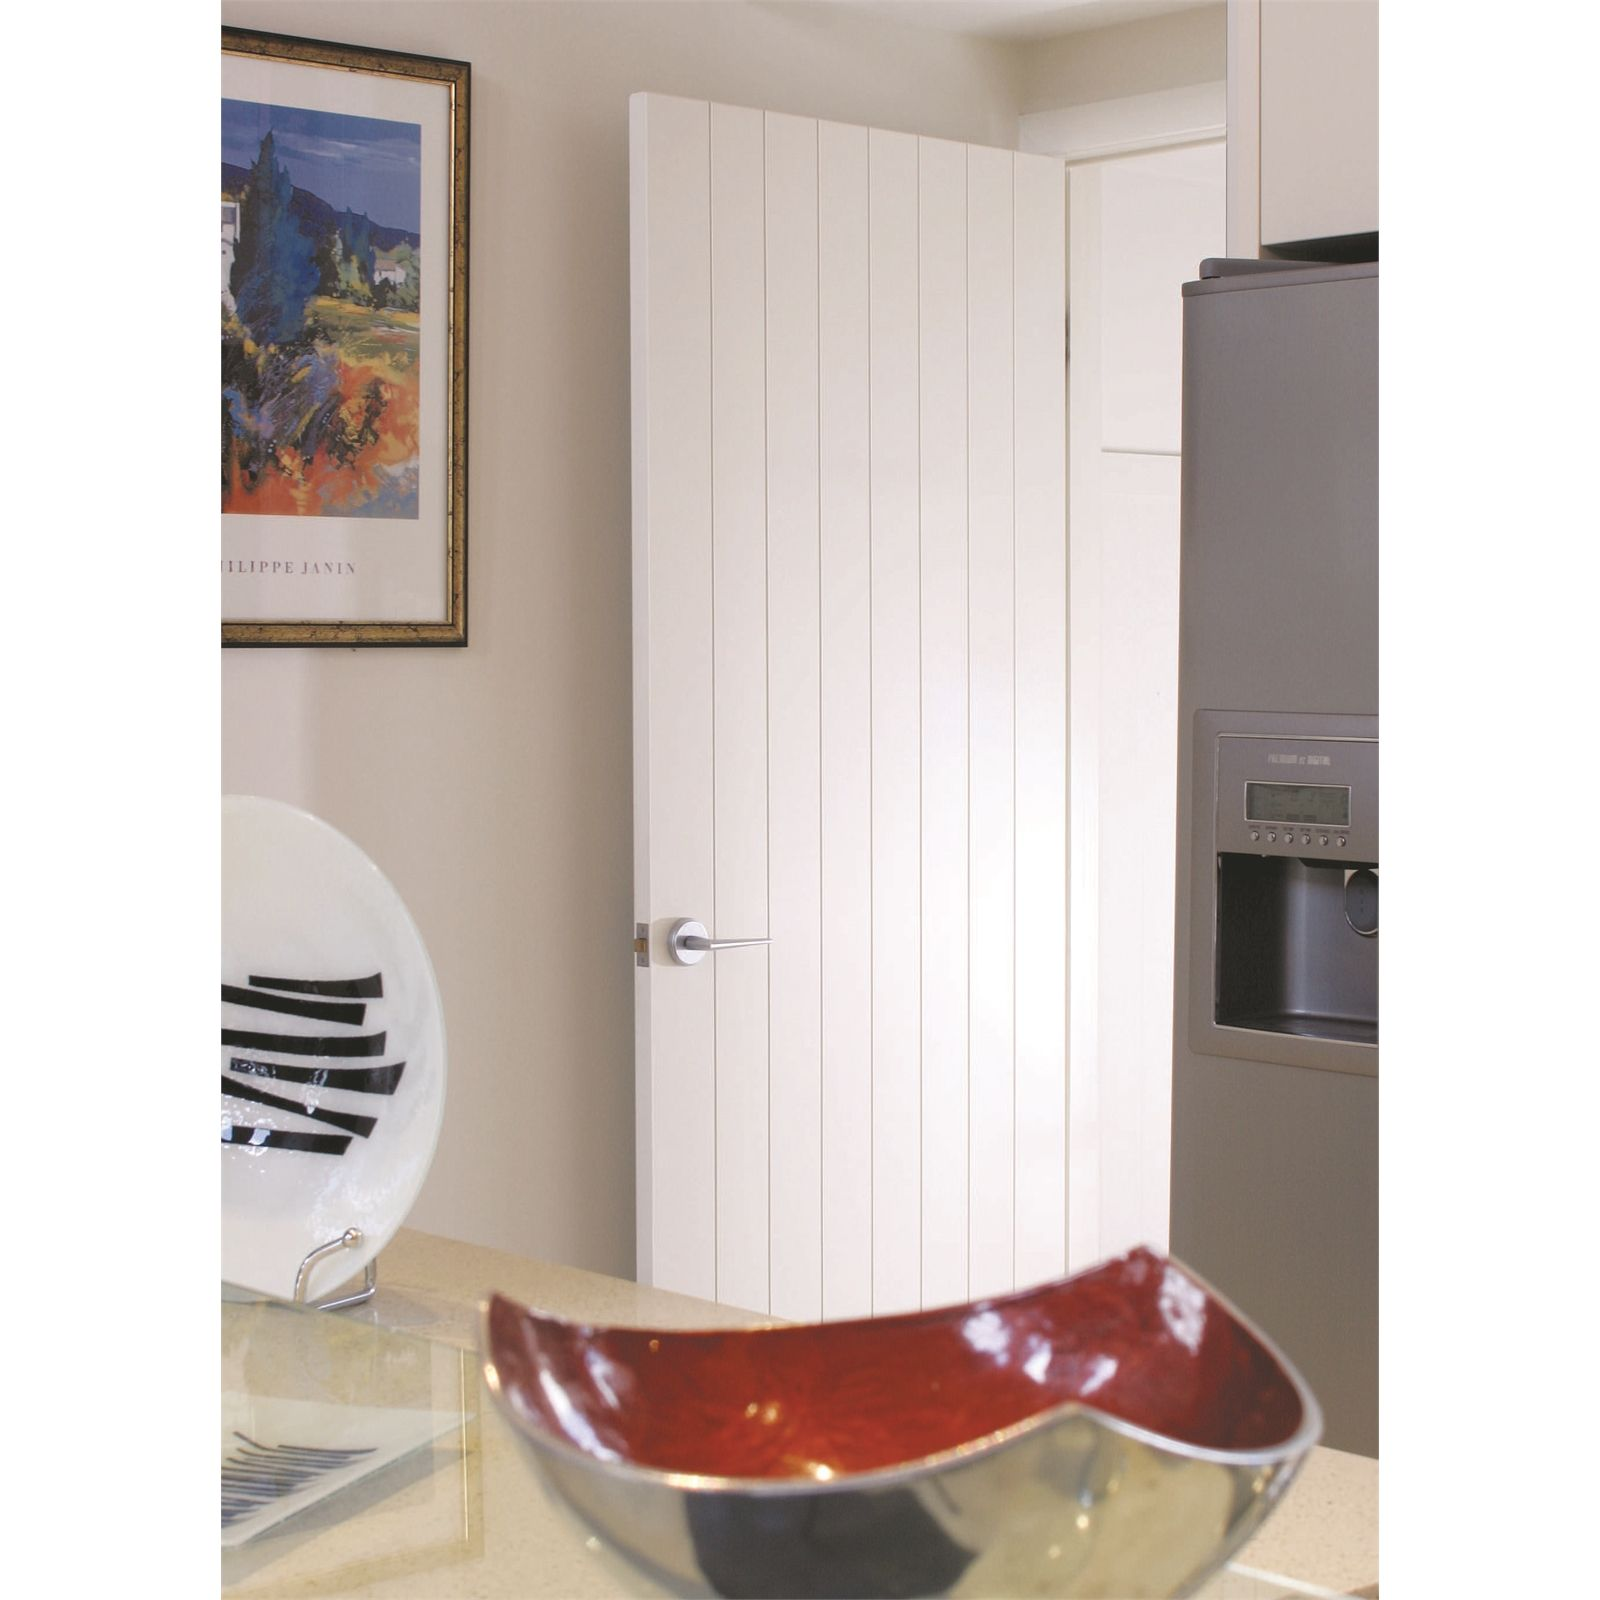 Hume Doors u0026 Timber 2040 x 620 x 35mm Accent Primed Internal Door  sc 1 st  Pinterest & Hume Doors u0026 Timber 2040 x 620 x 35mm Accent Primed Internal Door ...